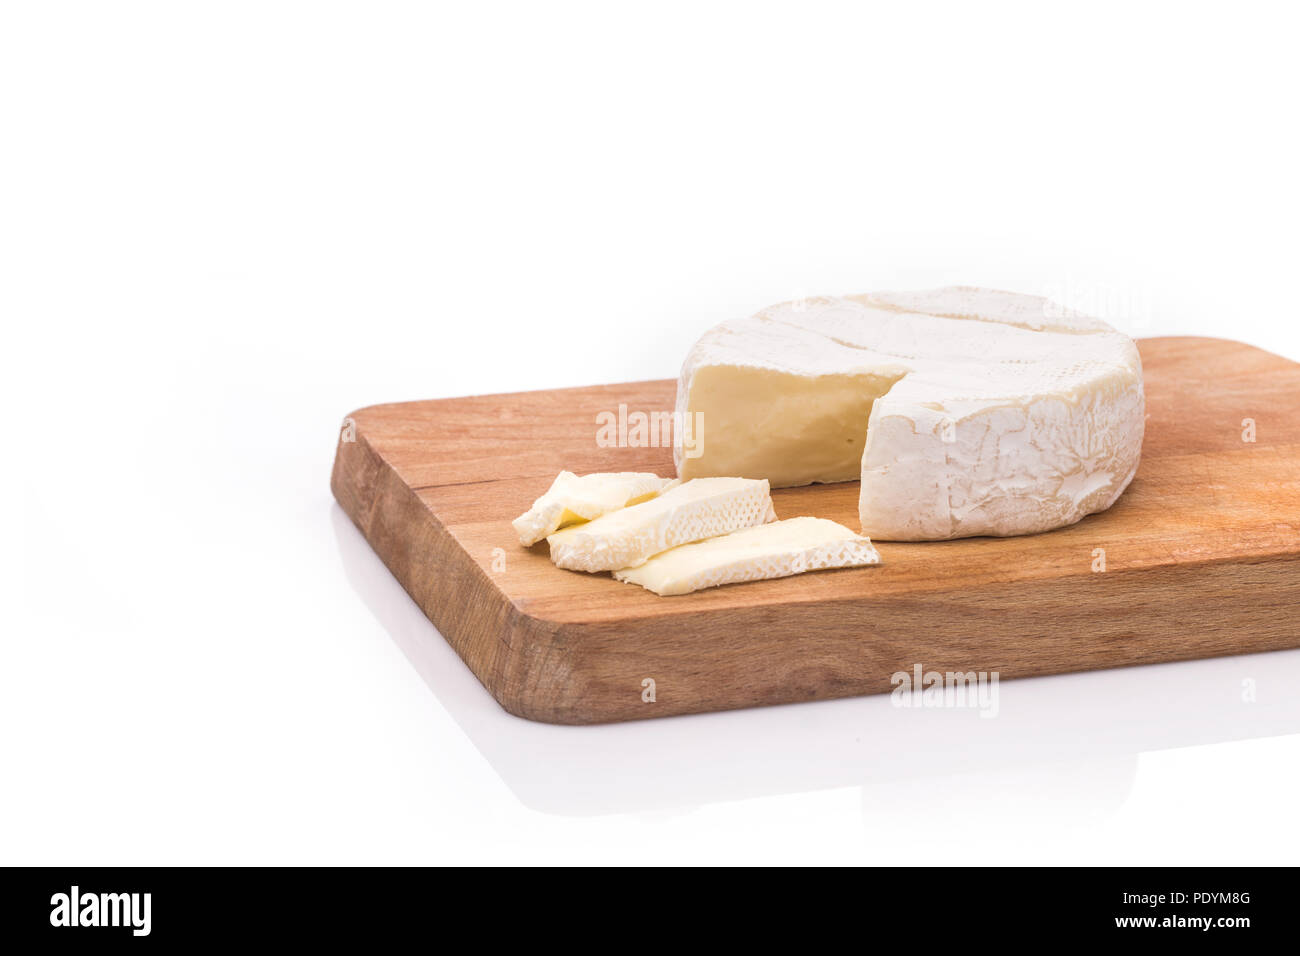 Creamy Brie on rustic wooden background, top view - Stock Image